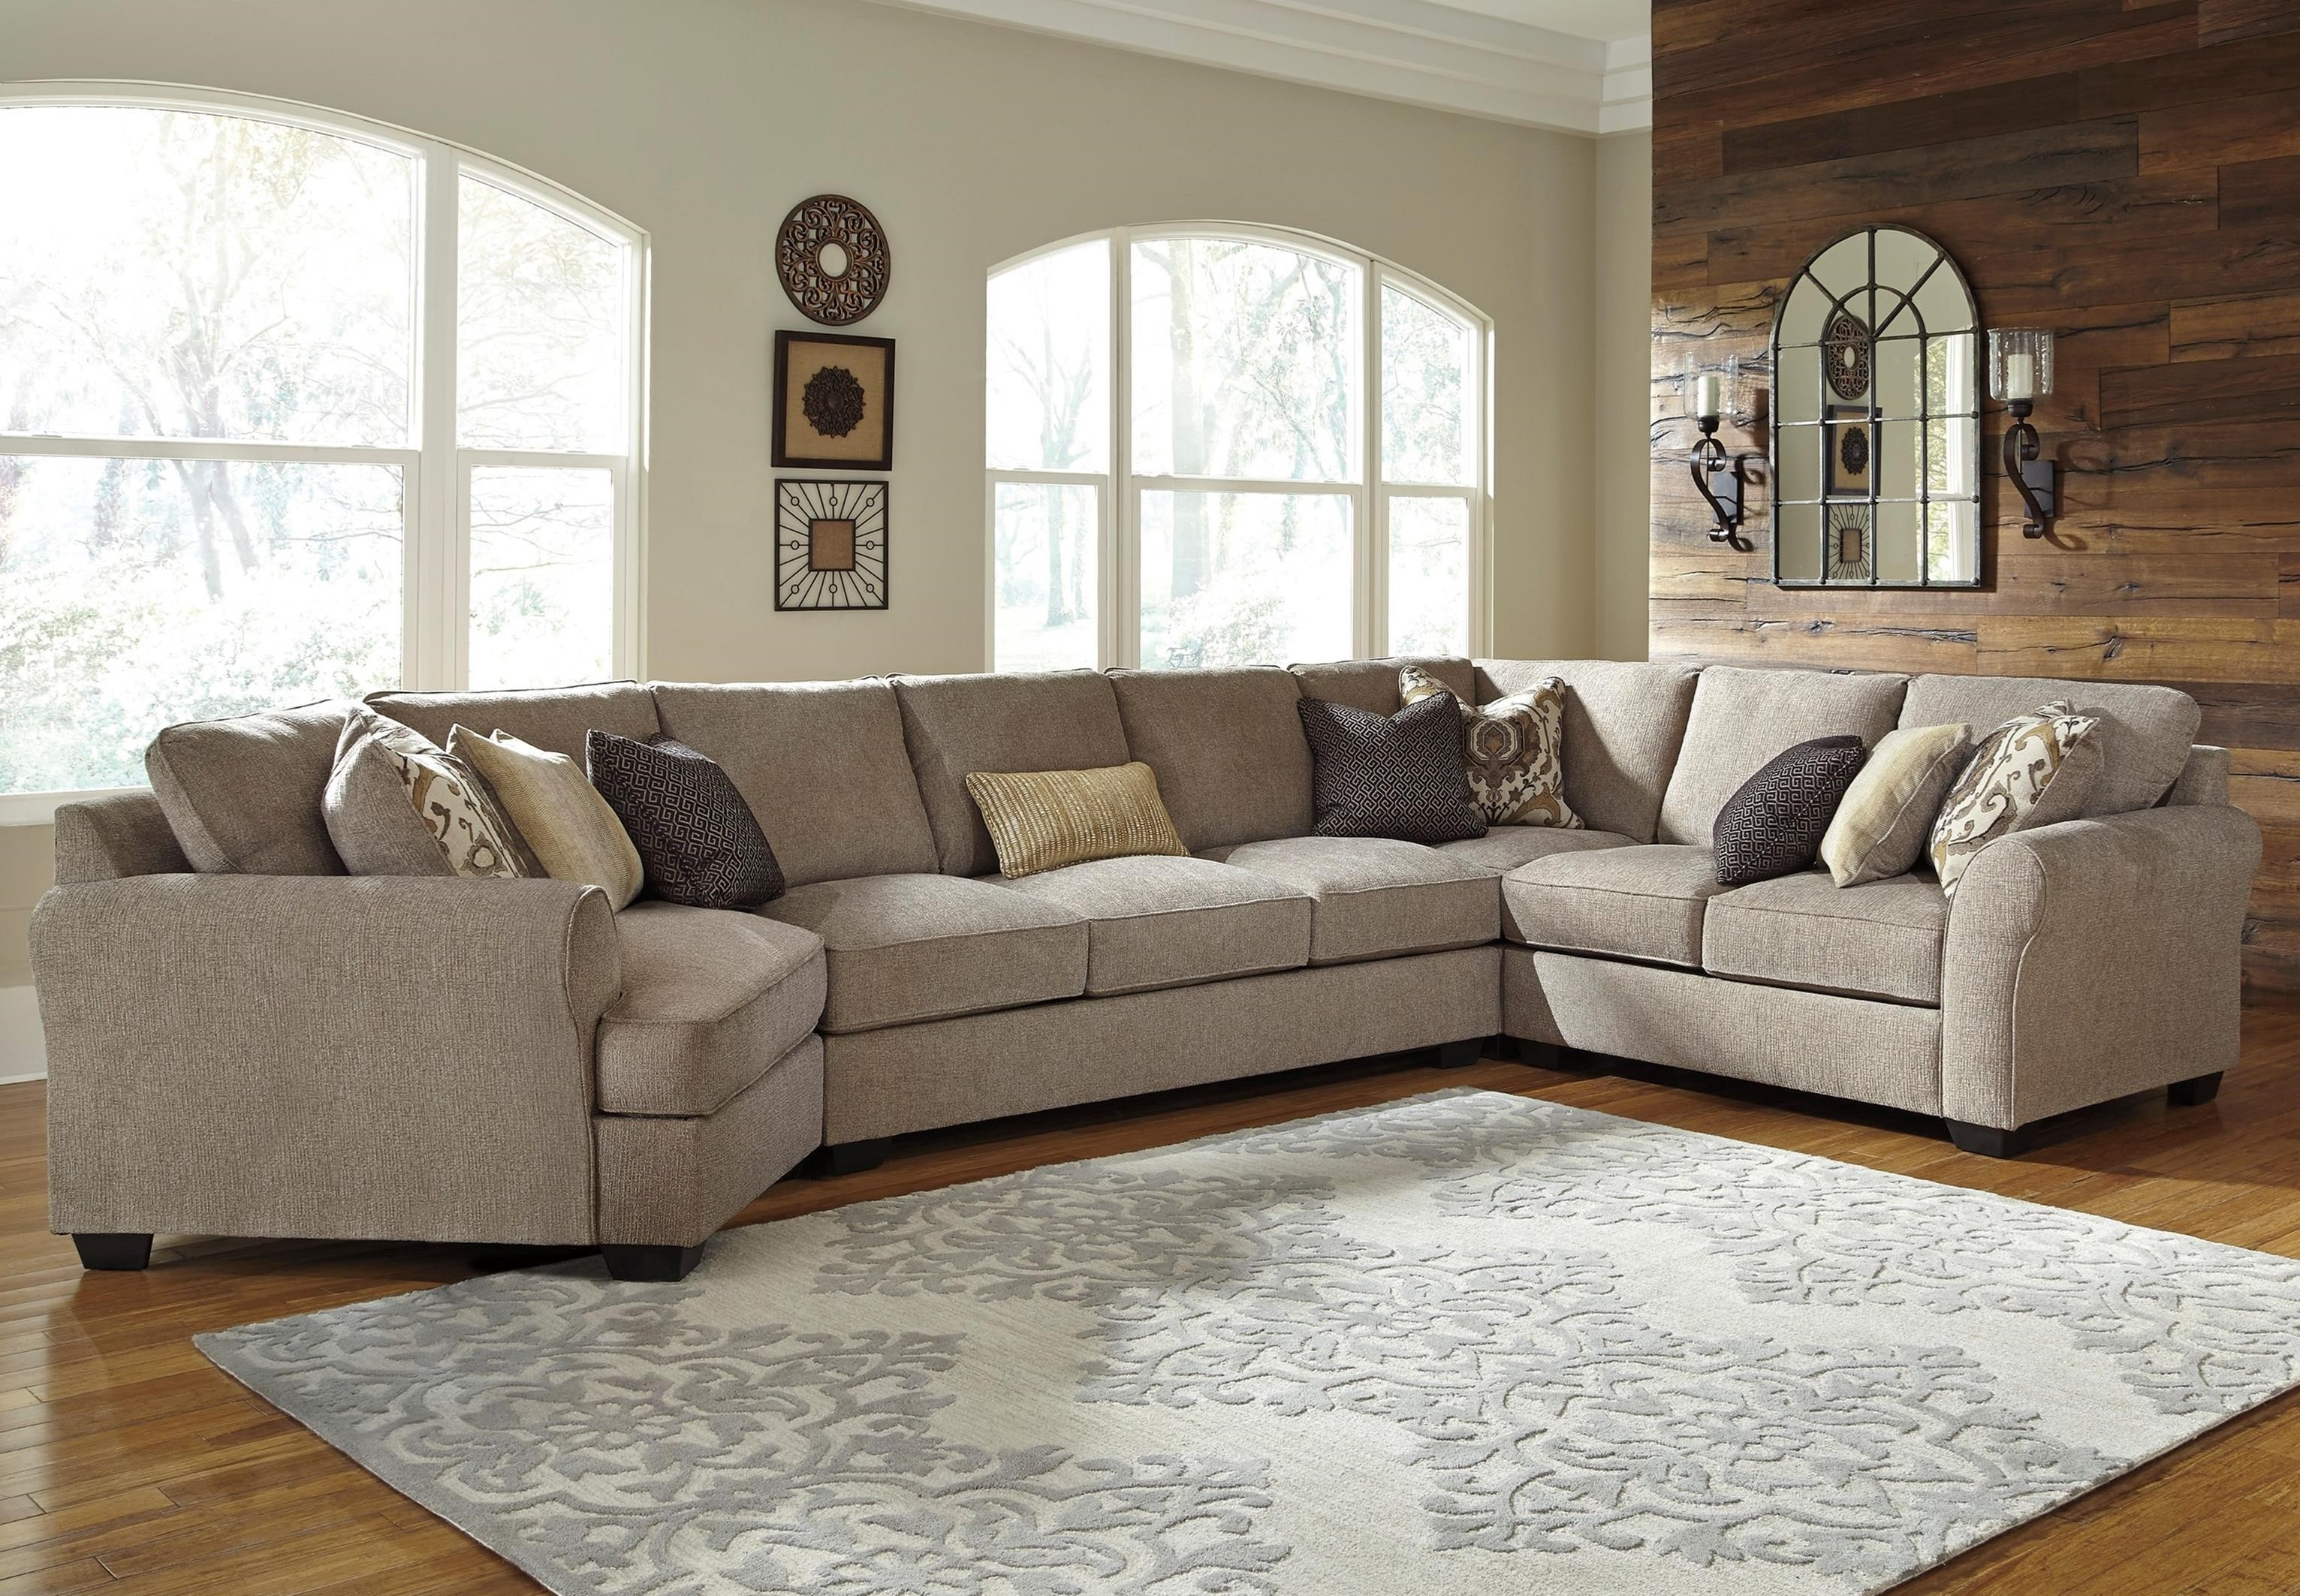 Benchcraft Pantomine 4 Piece Sectional With Left Cuddler Armless Pertaining To Cuddler Sectional Sofa (Image 2 of 15)